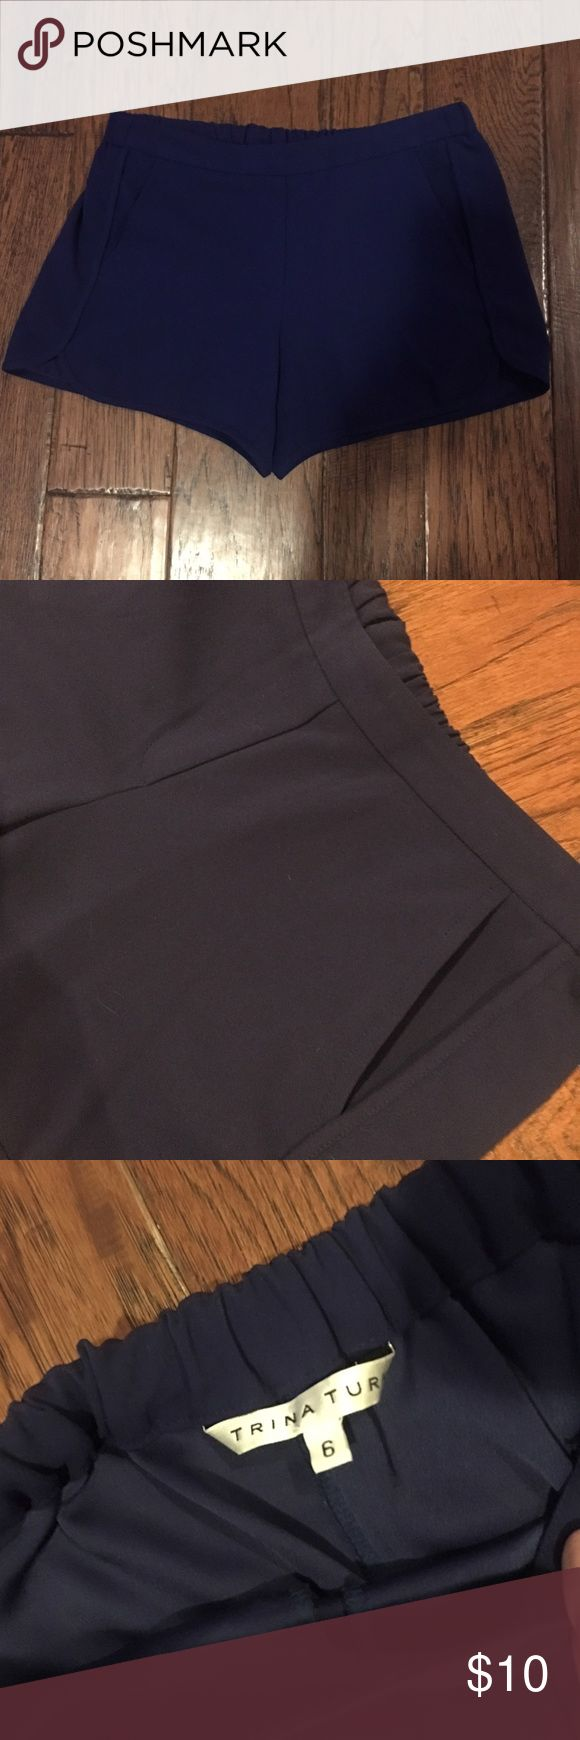 """Trina Turk Cobalt Blue Shorts Adorable and comfortable! Had a stretch waistband and pockets! You will love these shorts! Used but still has plenty of life left, priced accordingly. 3.5"""" inseam. First photo and last shows color the best! Trina Turk Shorts"""